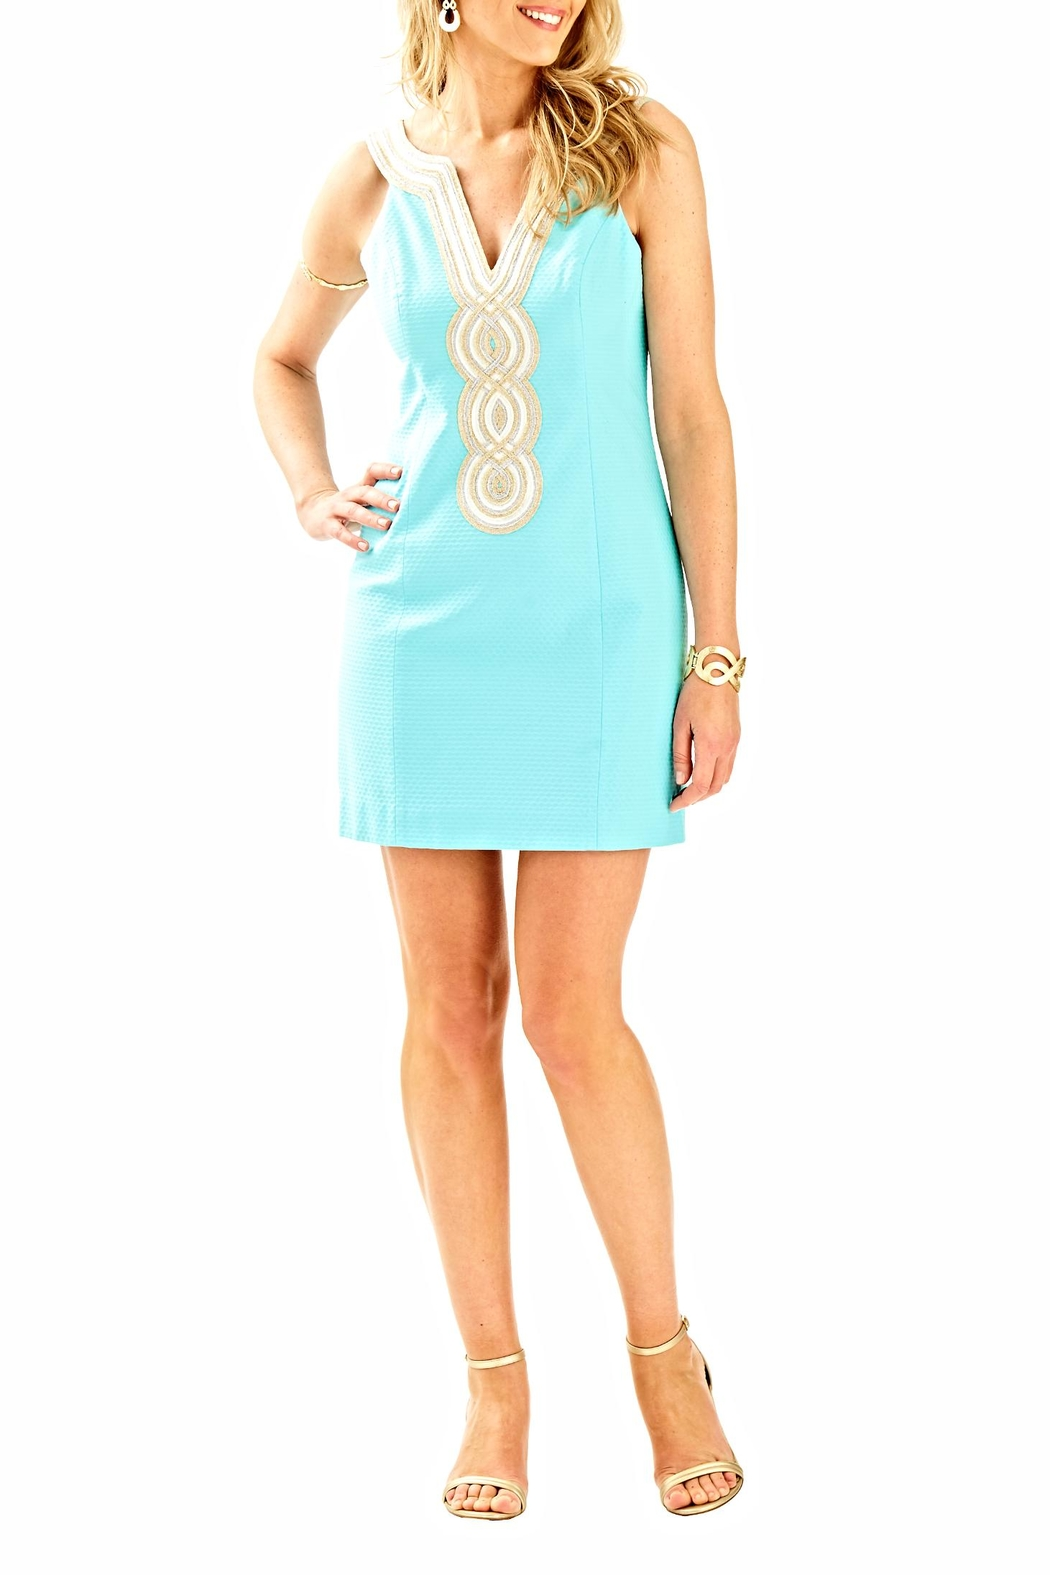 Lilly Pulitzer Valli Shift Dress from Sandestin Golf and Beach ...